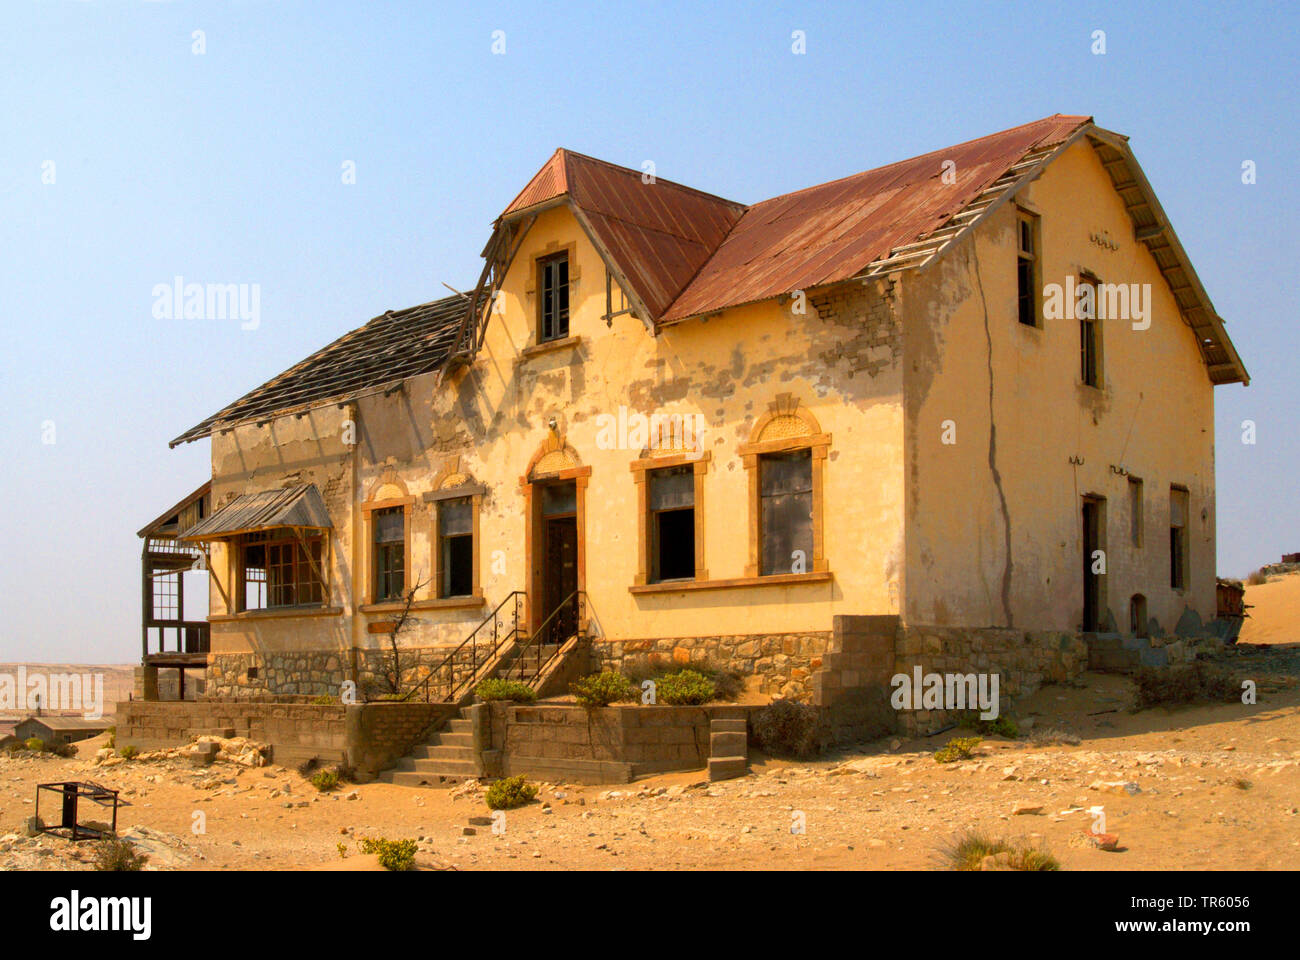 house in the ghost town Kolmannskuppe, Namibia, Kolmannskuppe - Stock Image